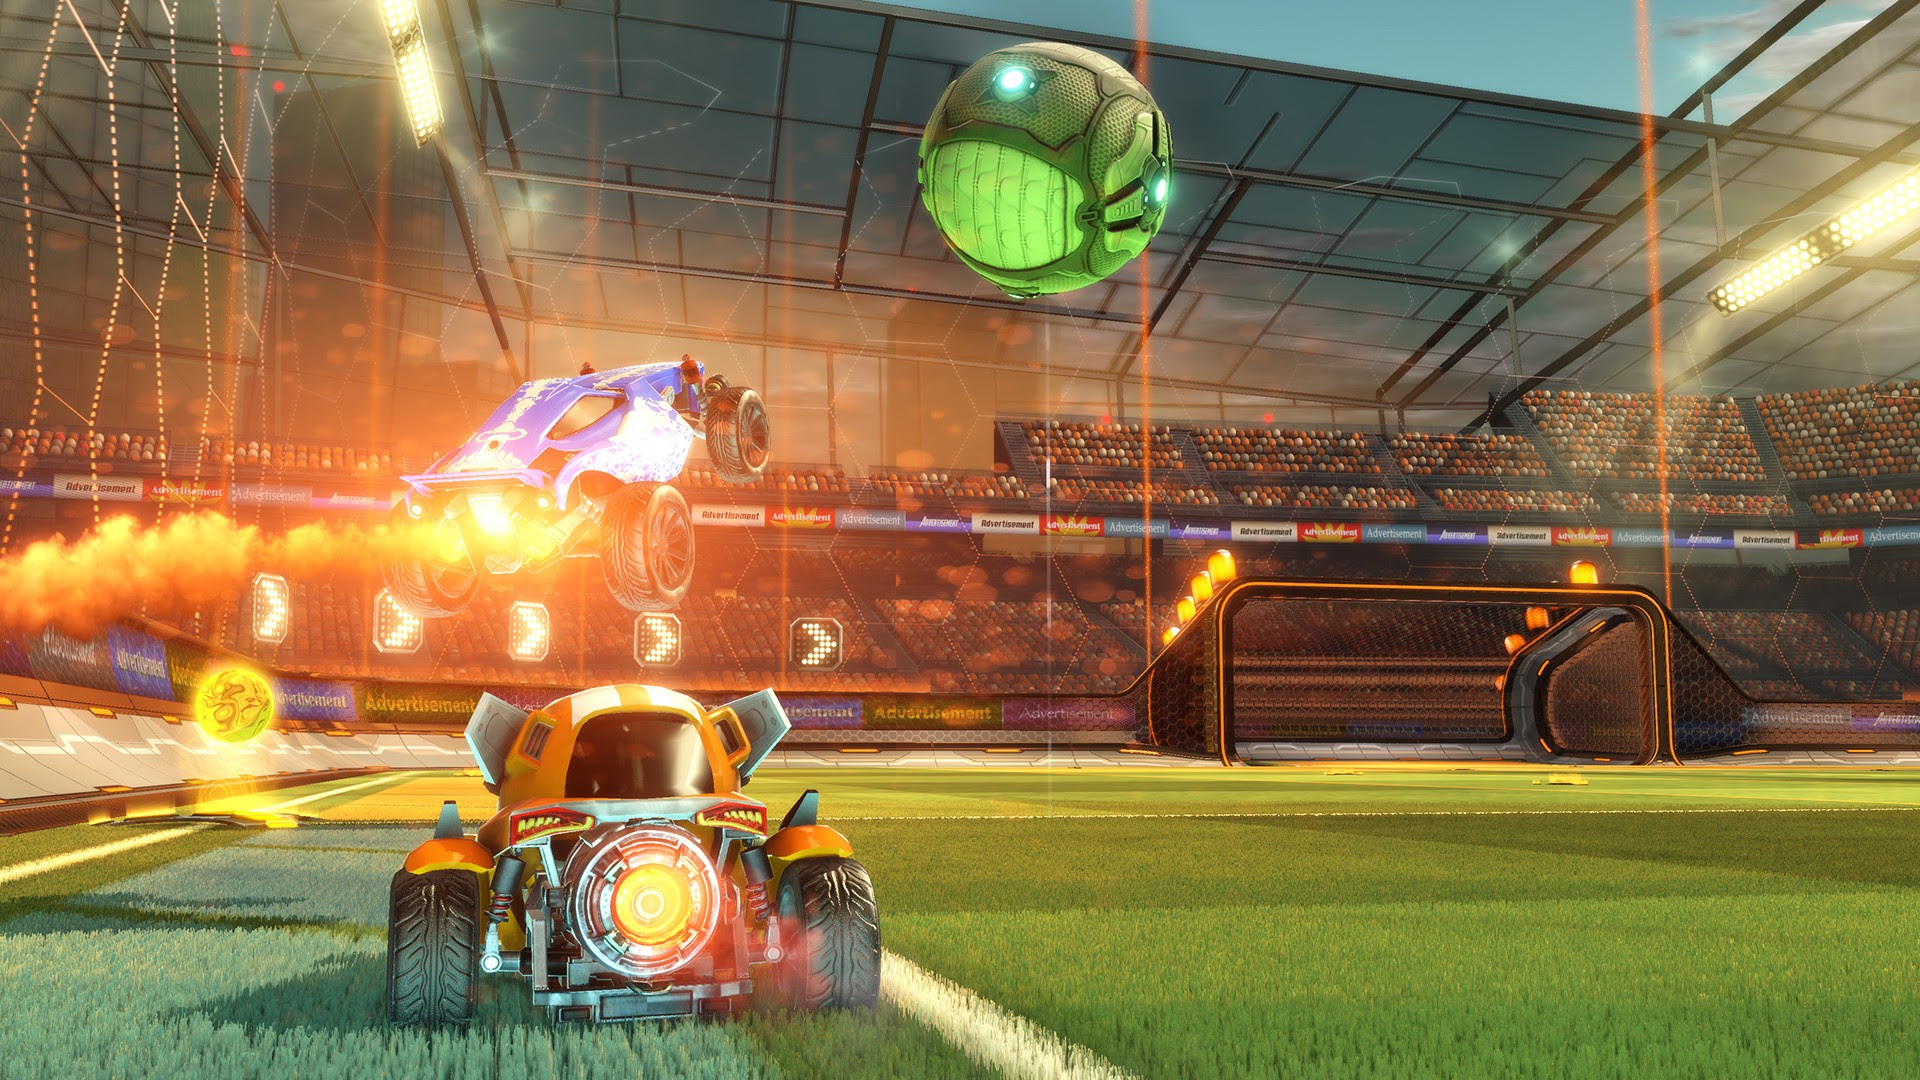 There's going to be a new Rocket League champion screenshot